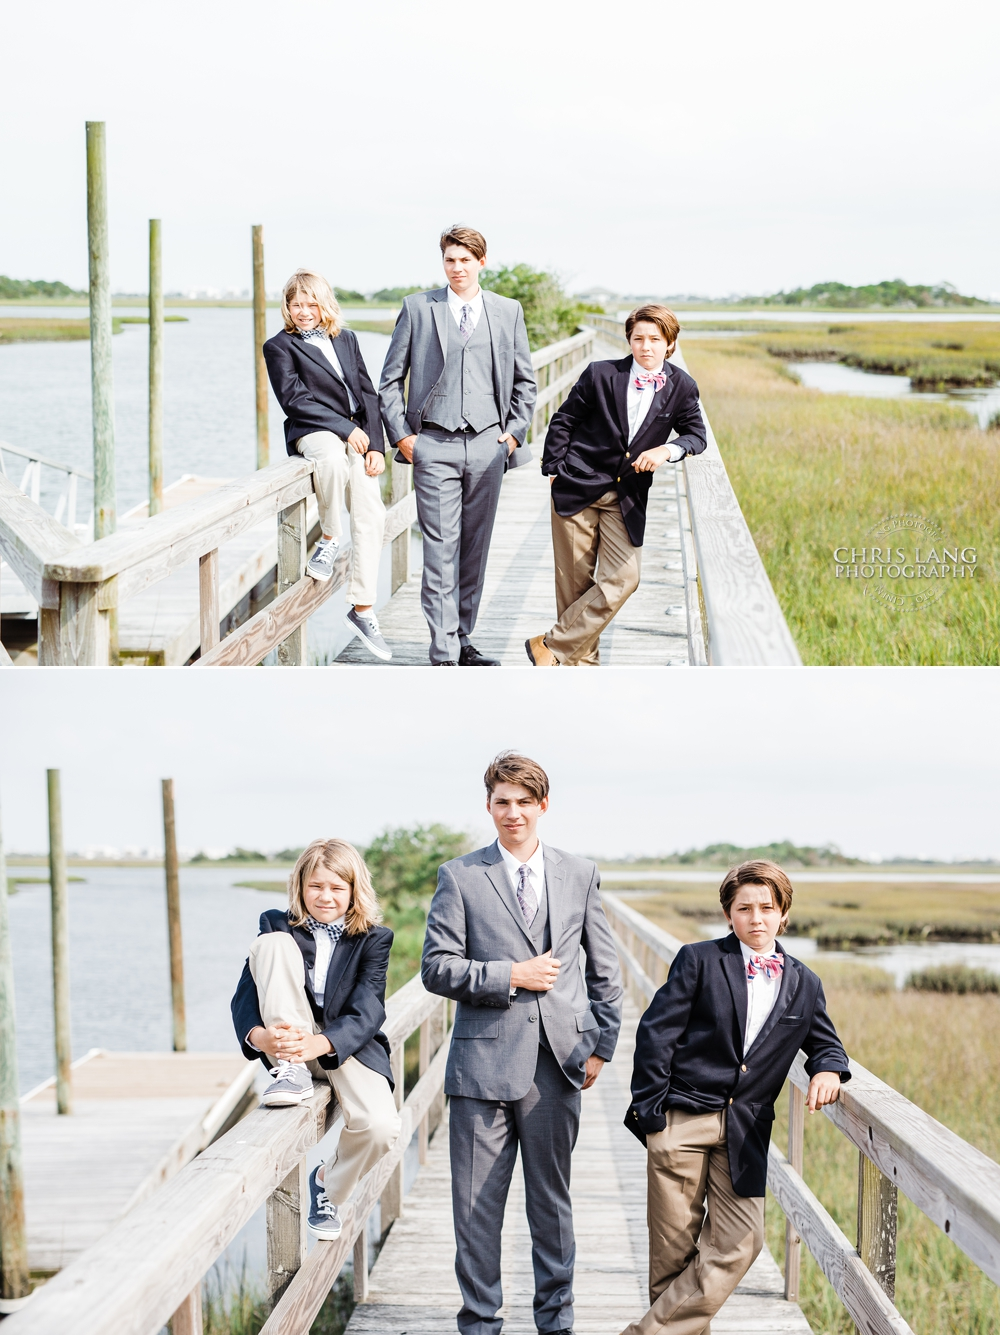 Image of three boys dress in suits and bowties - southern style - Wilmington NC Portrait Photographer